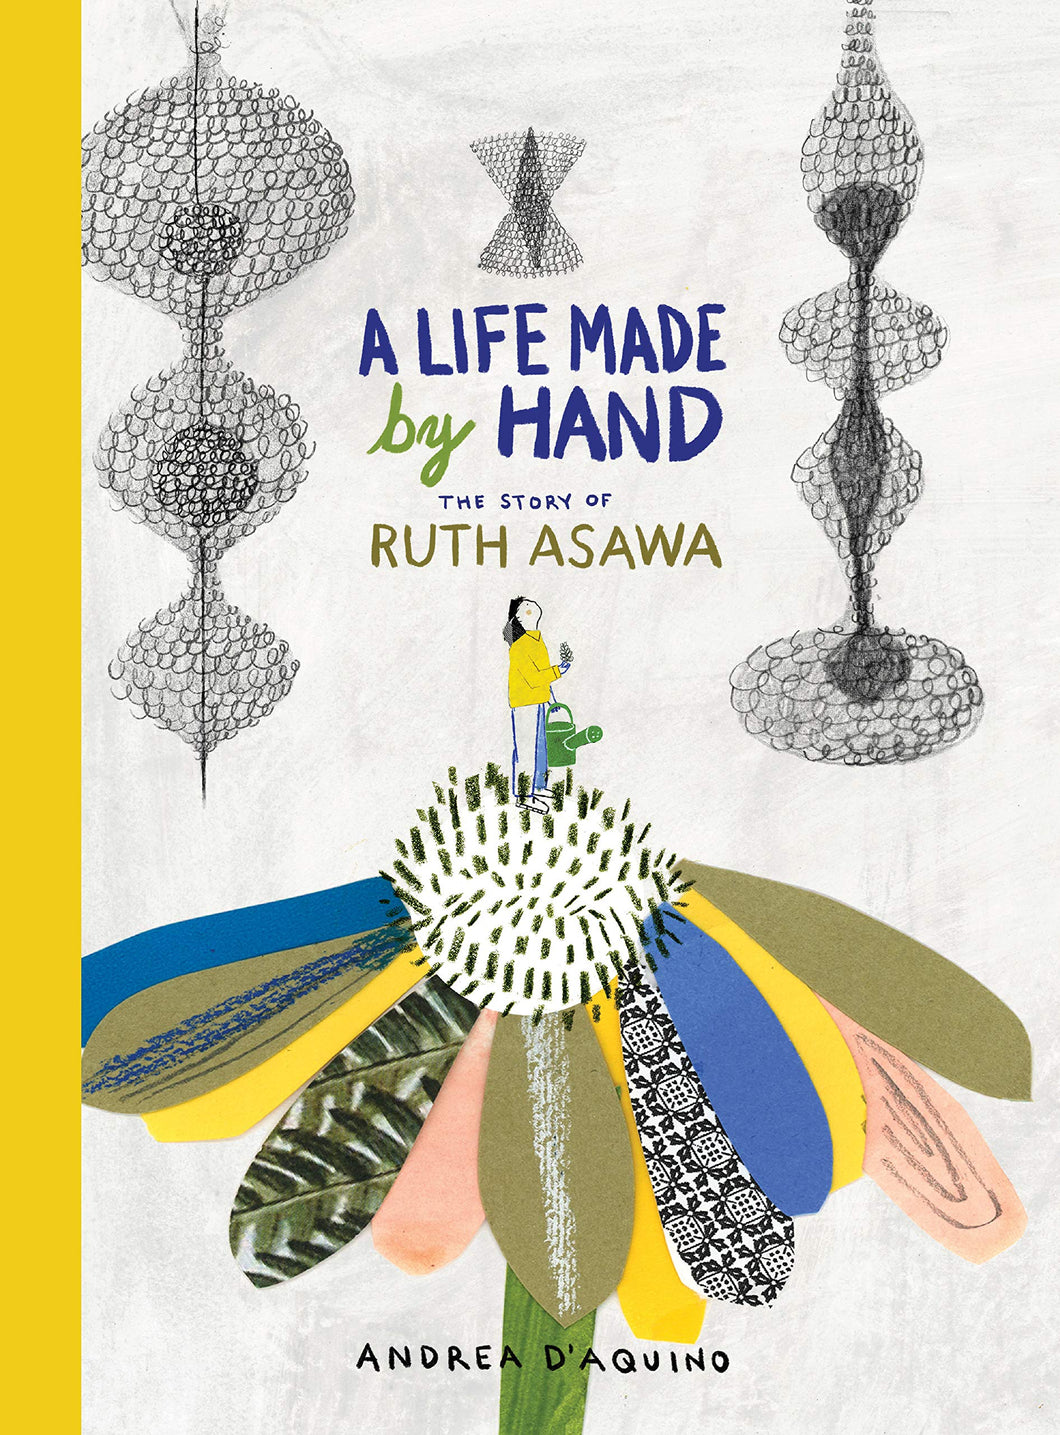 A Life Made by Hand: The Story of Ruth Asawa (Japanese-American artist and sculptor)